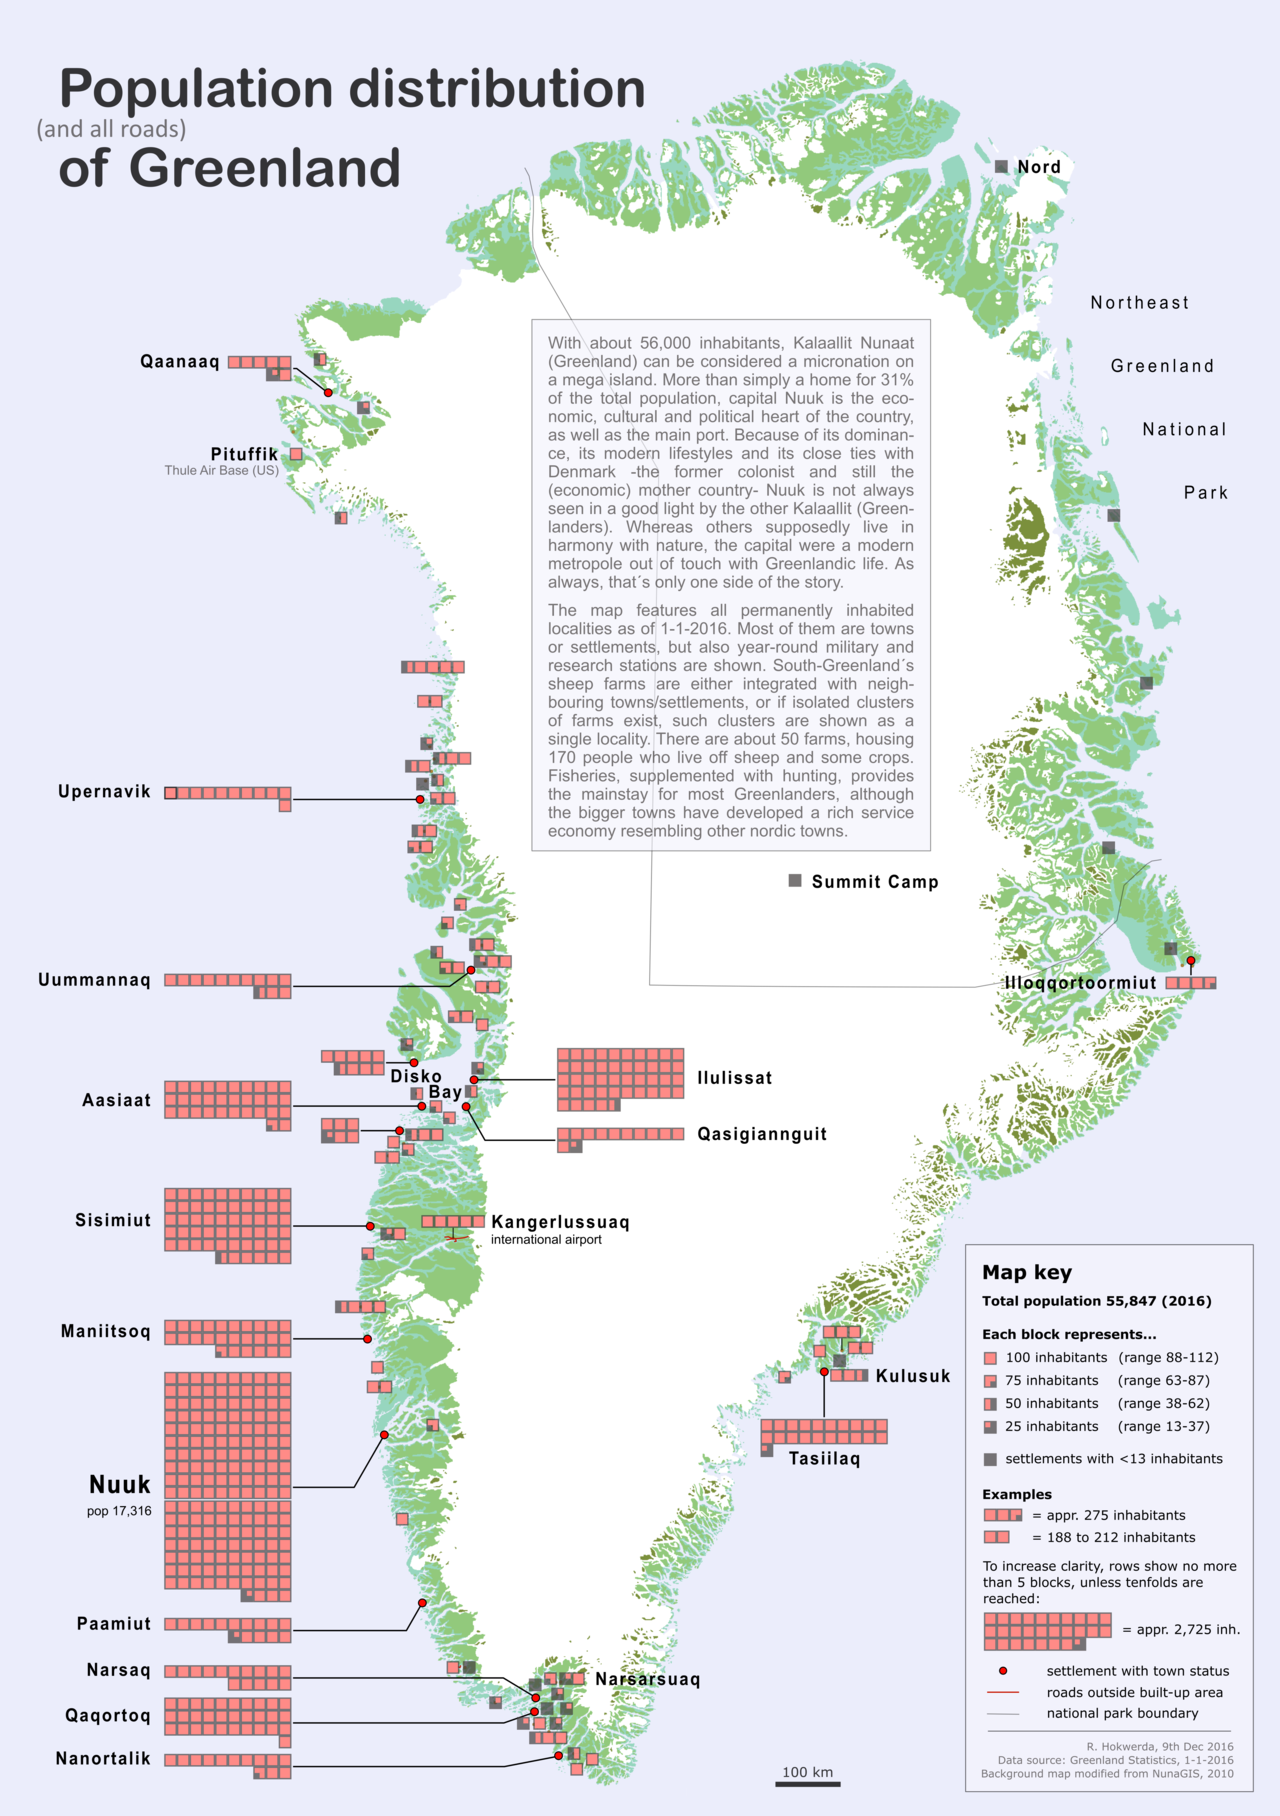 Population distribution (and roads) of Greenland